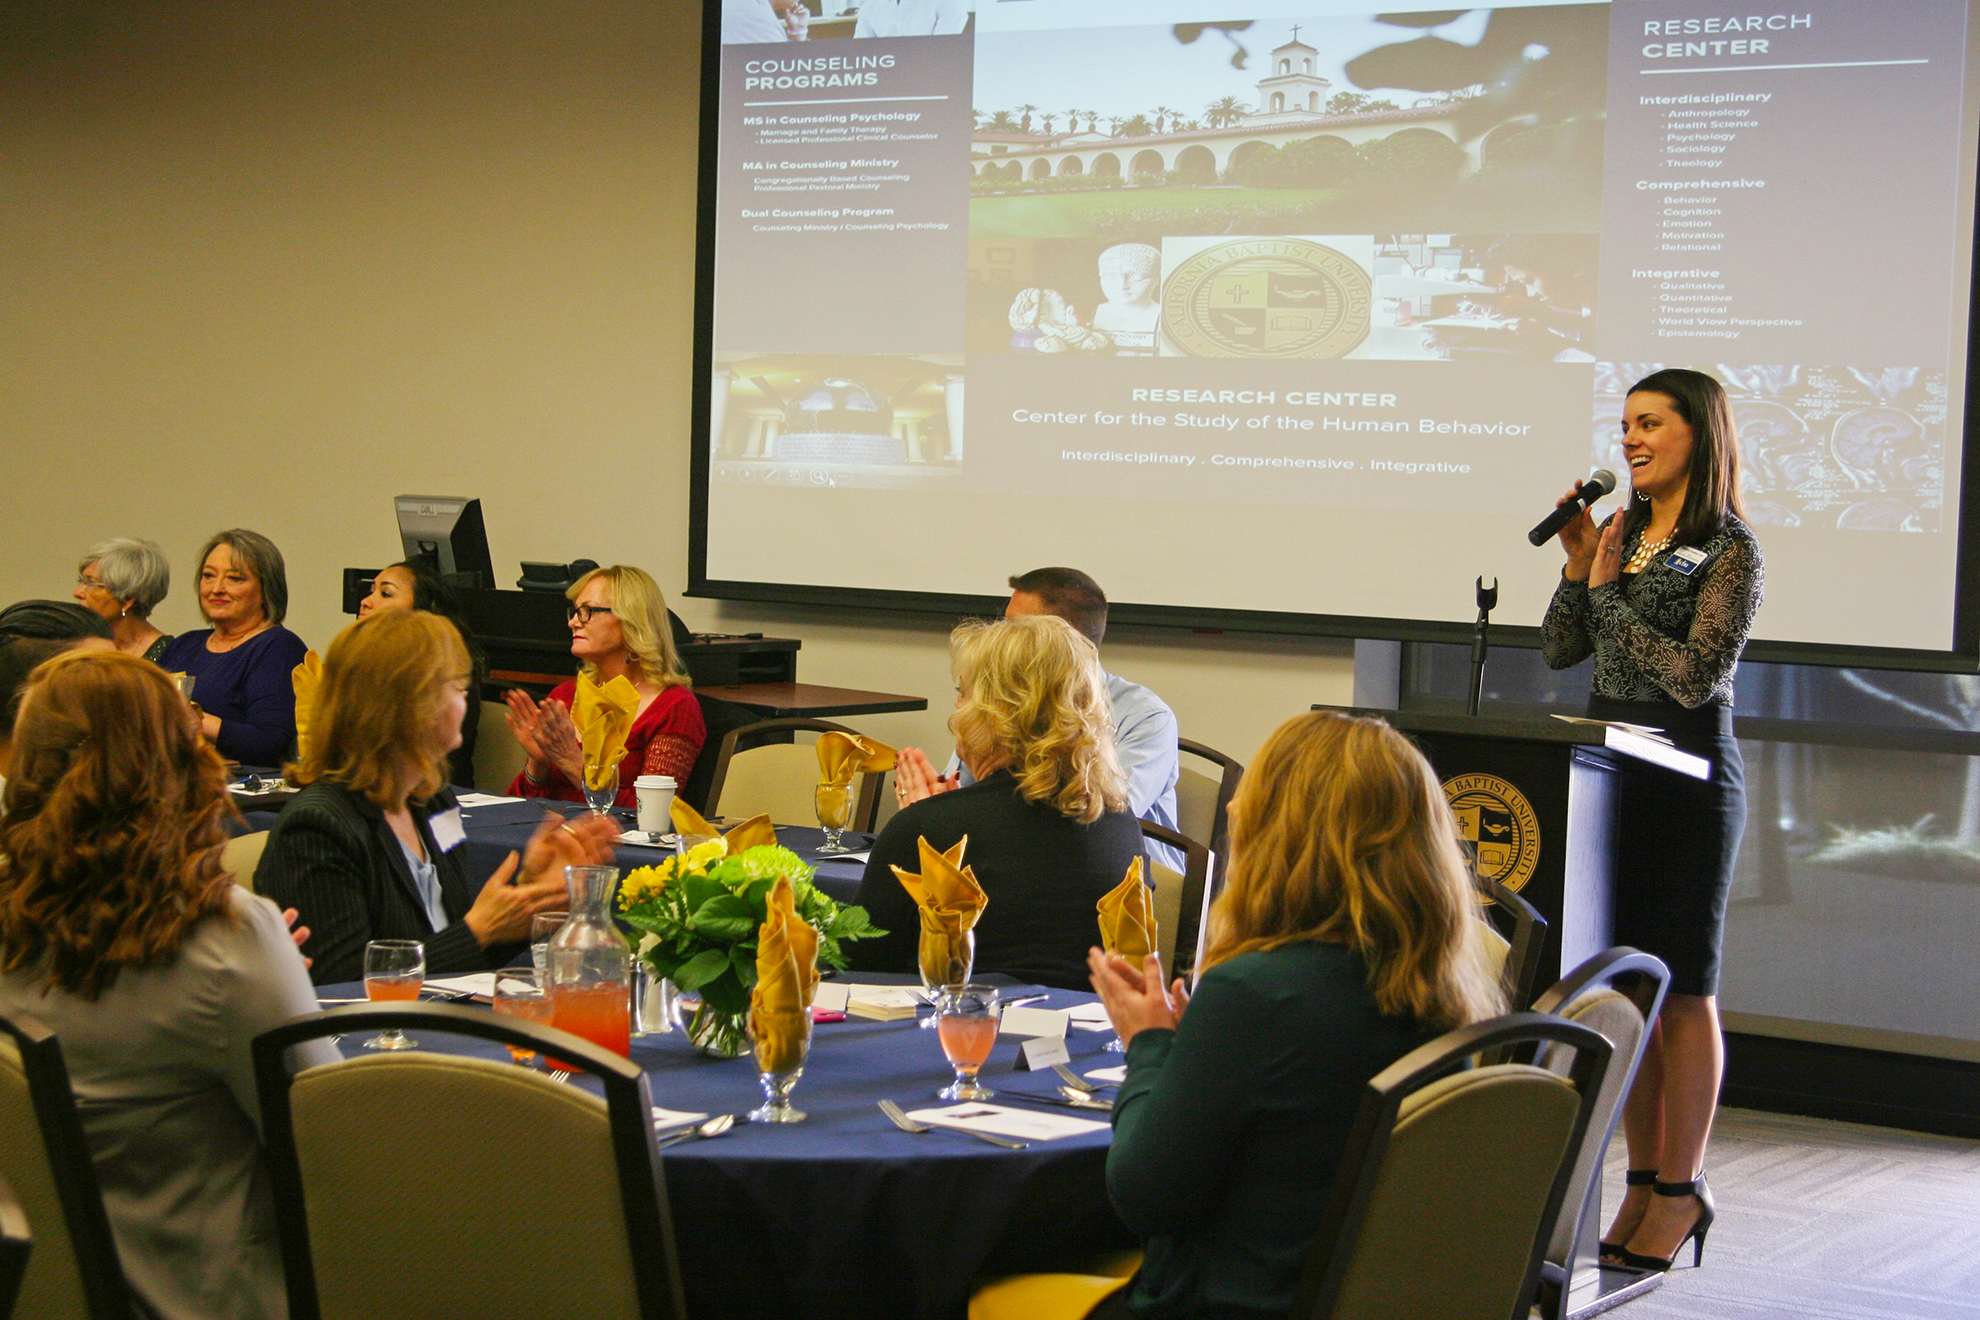 Annual Counseling Psychology Practicum Luncheon at CBU